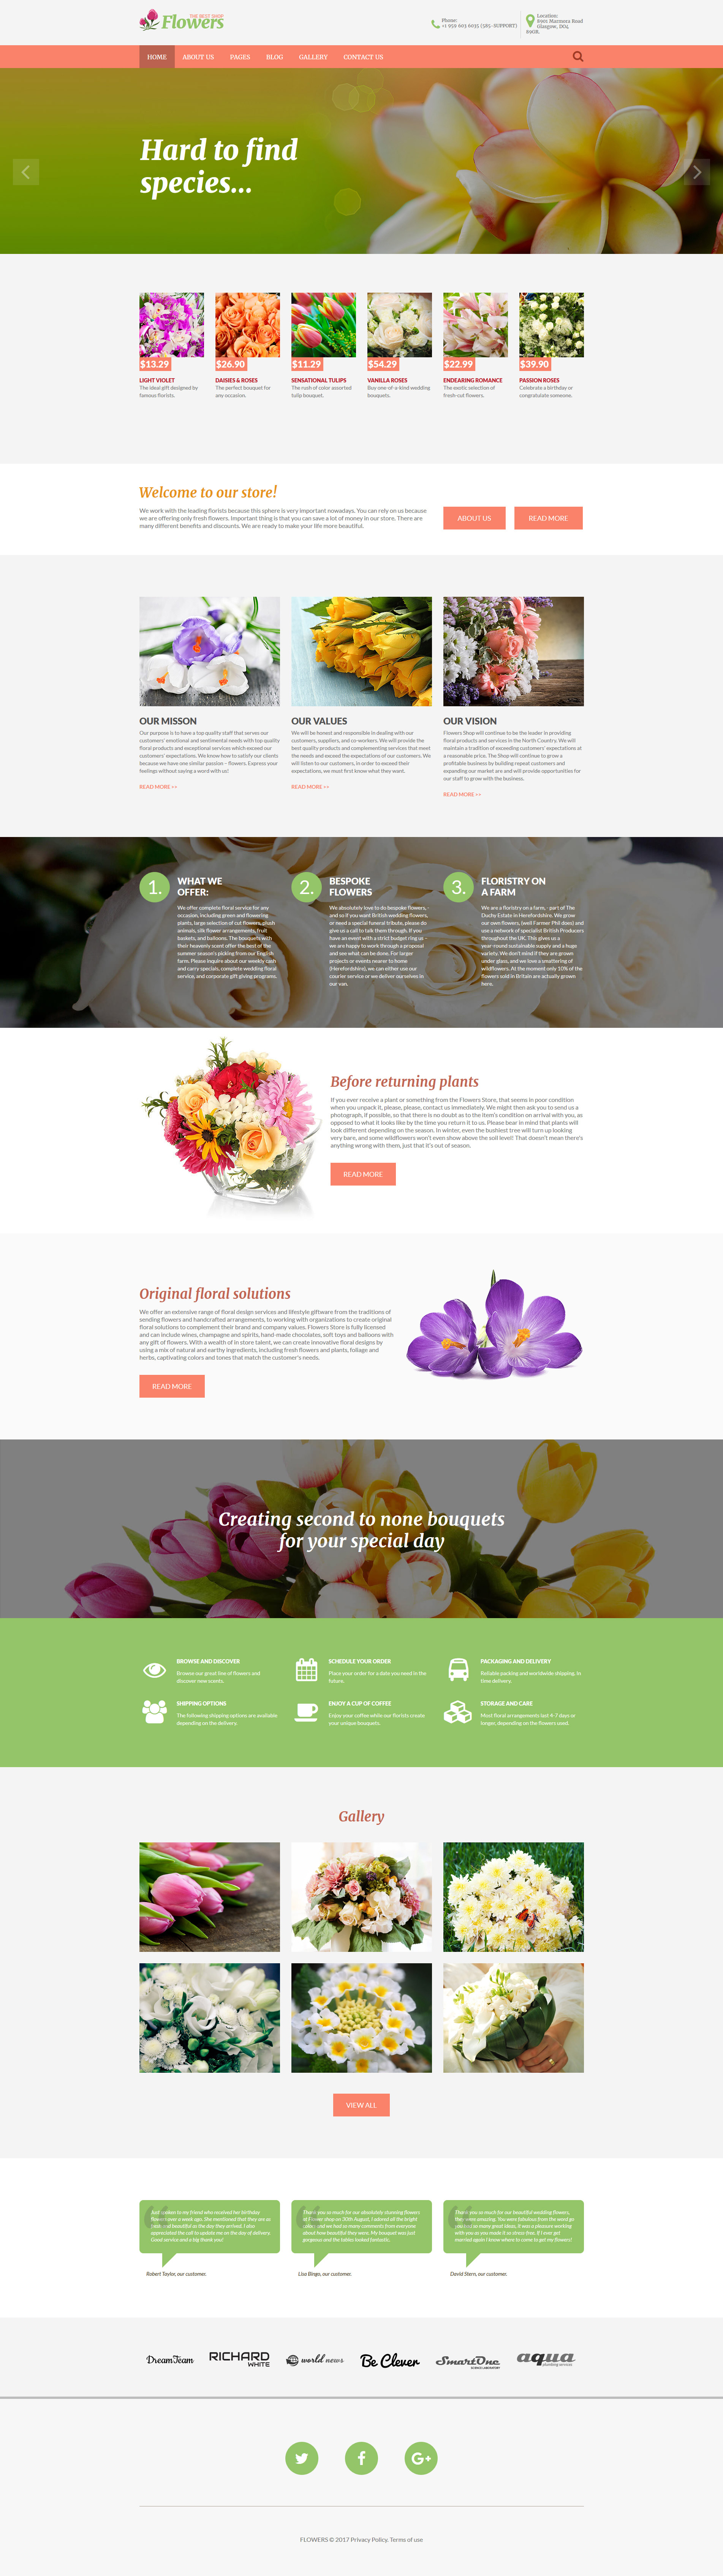 Flowers - Flower Shop Responsive Joomla Template